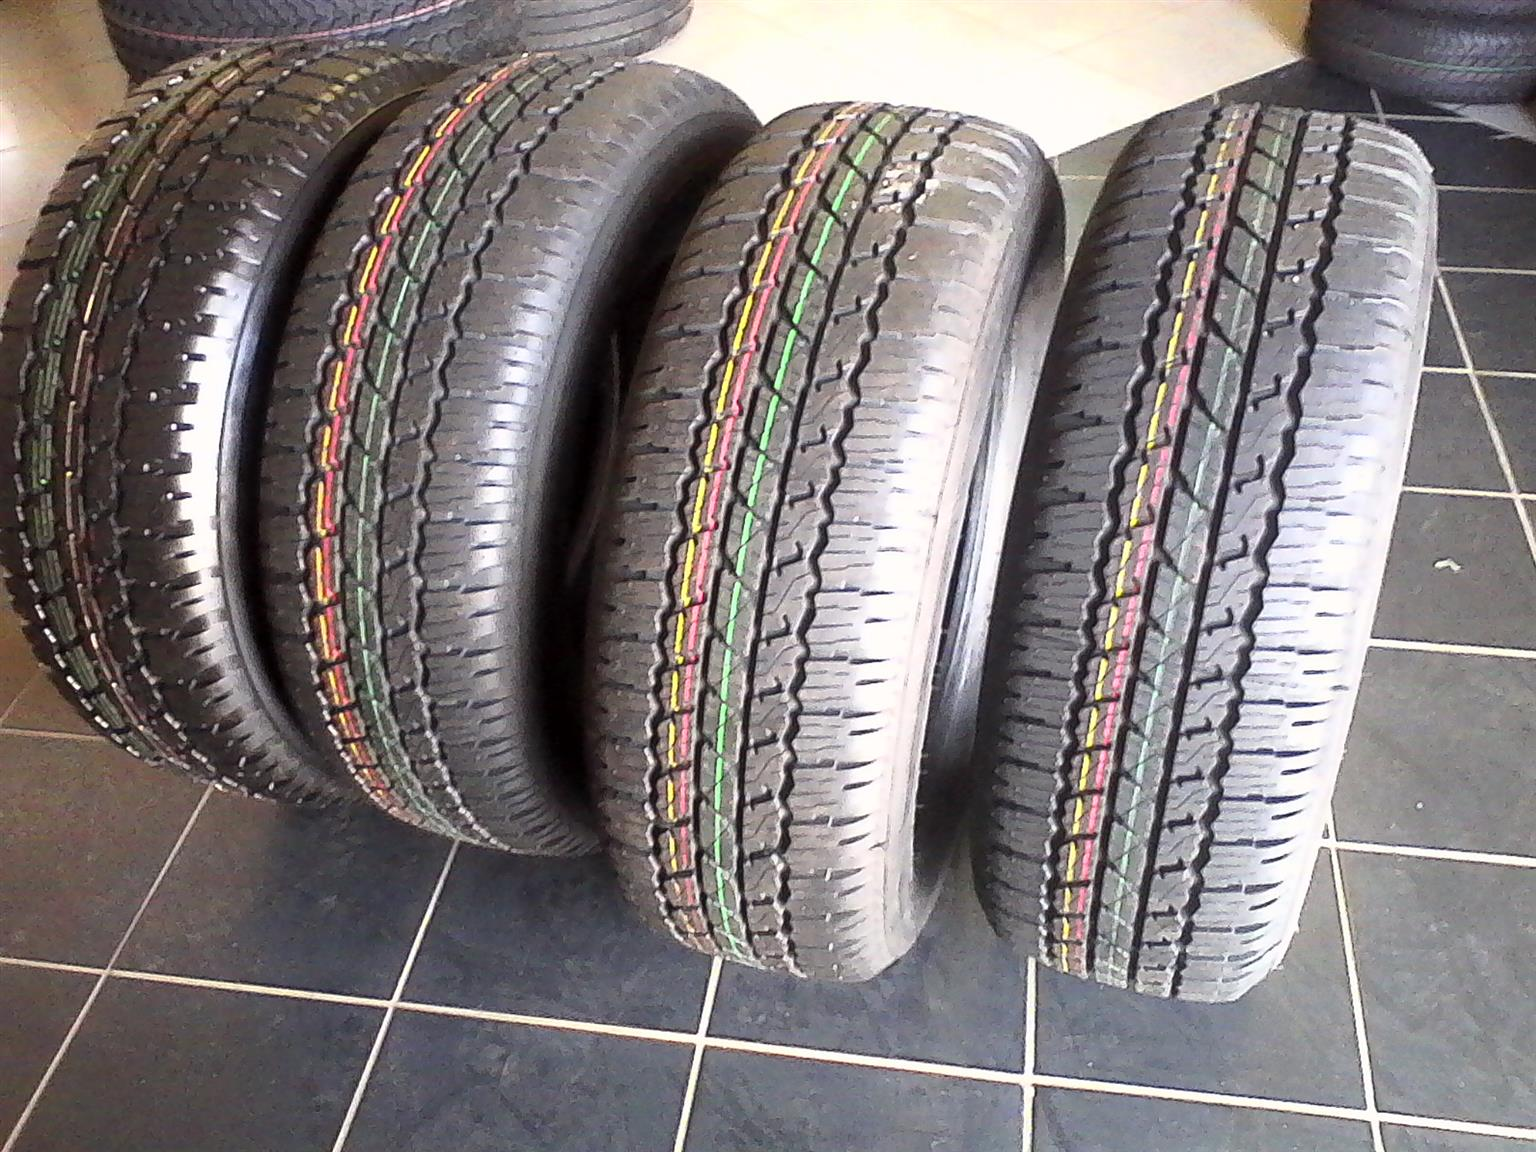 New Bridgestone dueler A/T 265/65/R17 Tyres with mag rims for Toyota Hilux R10999 {Set of 4}.